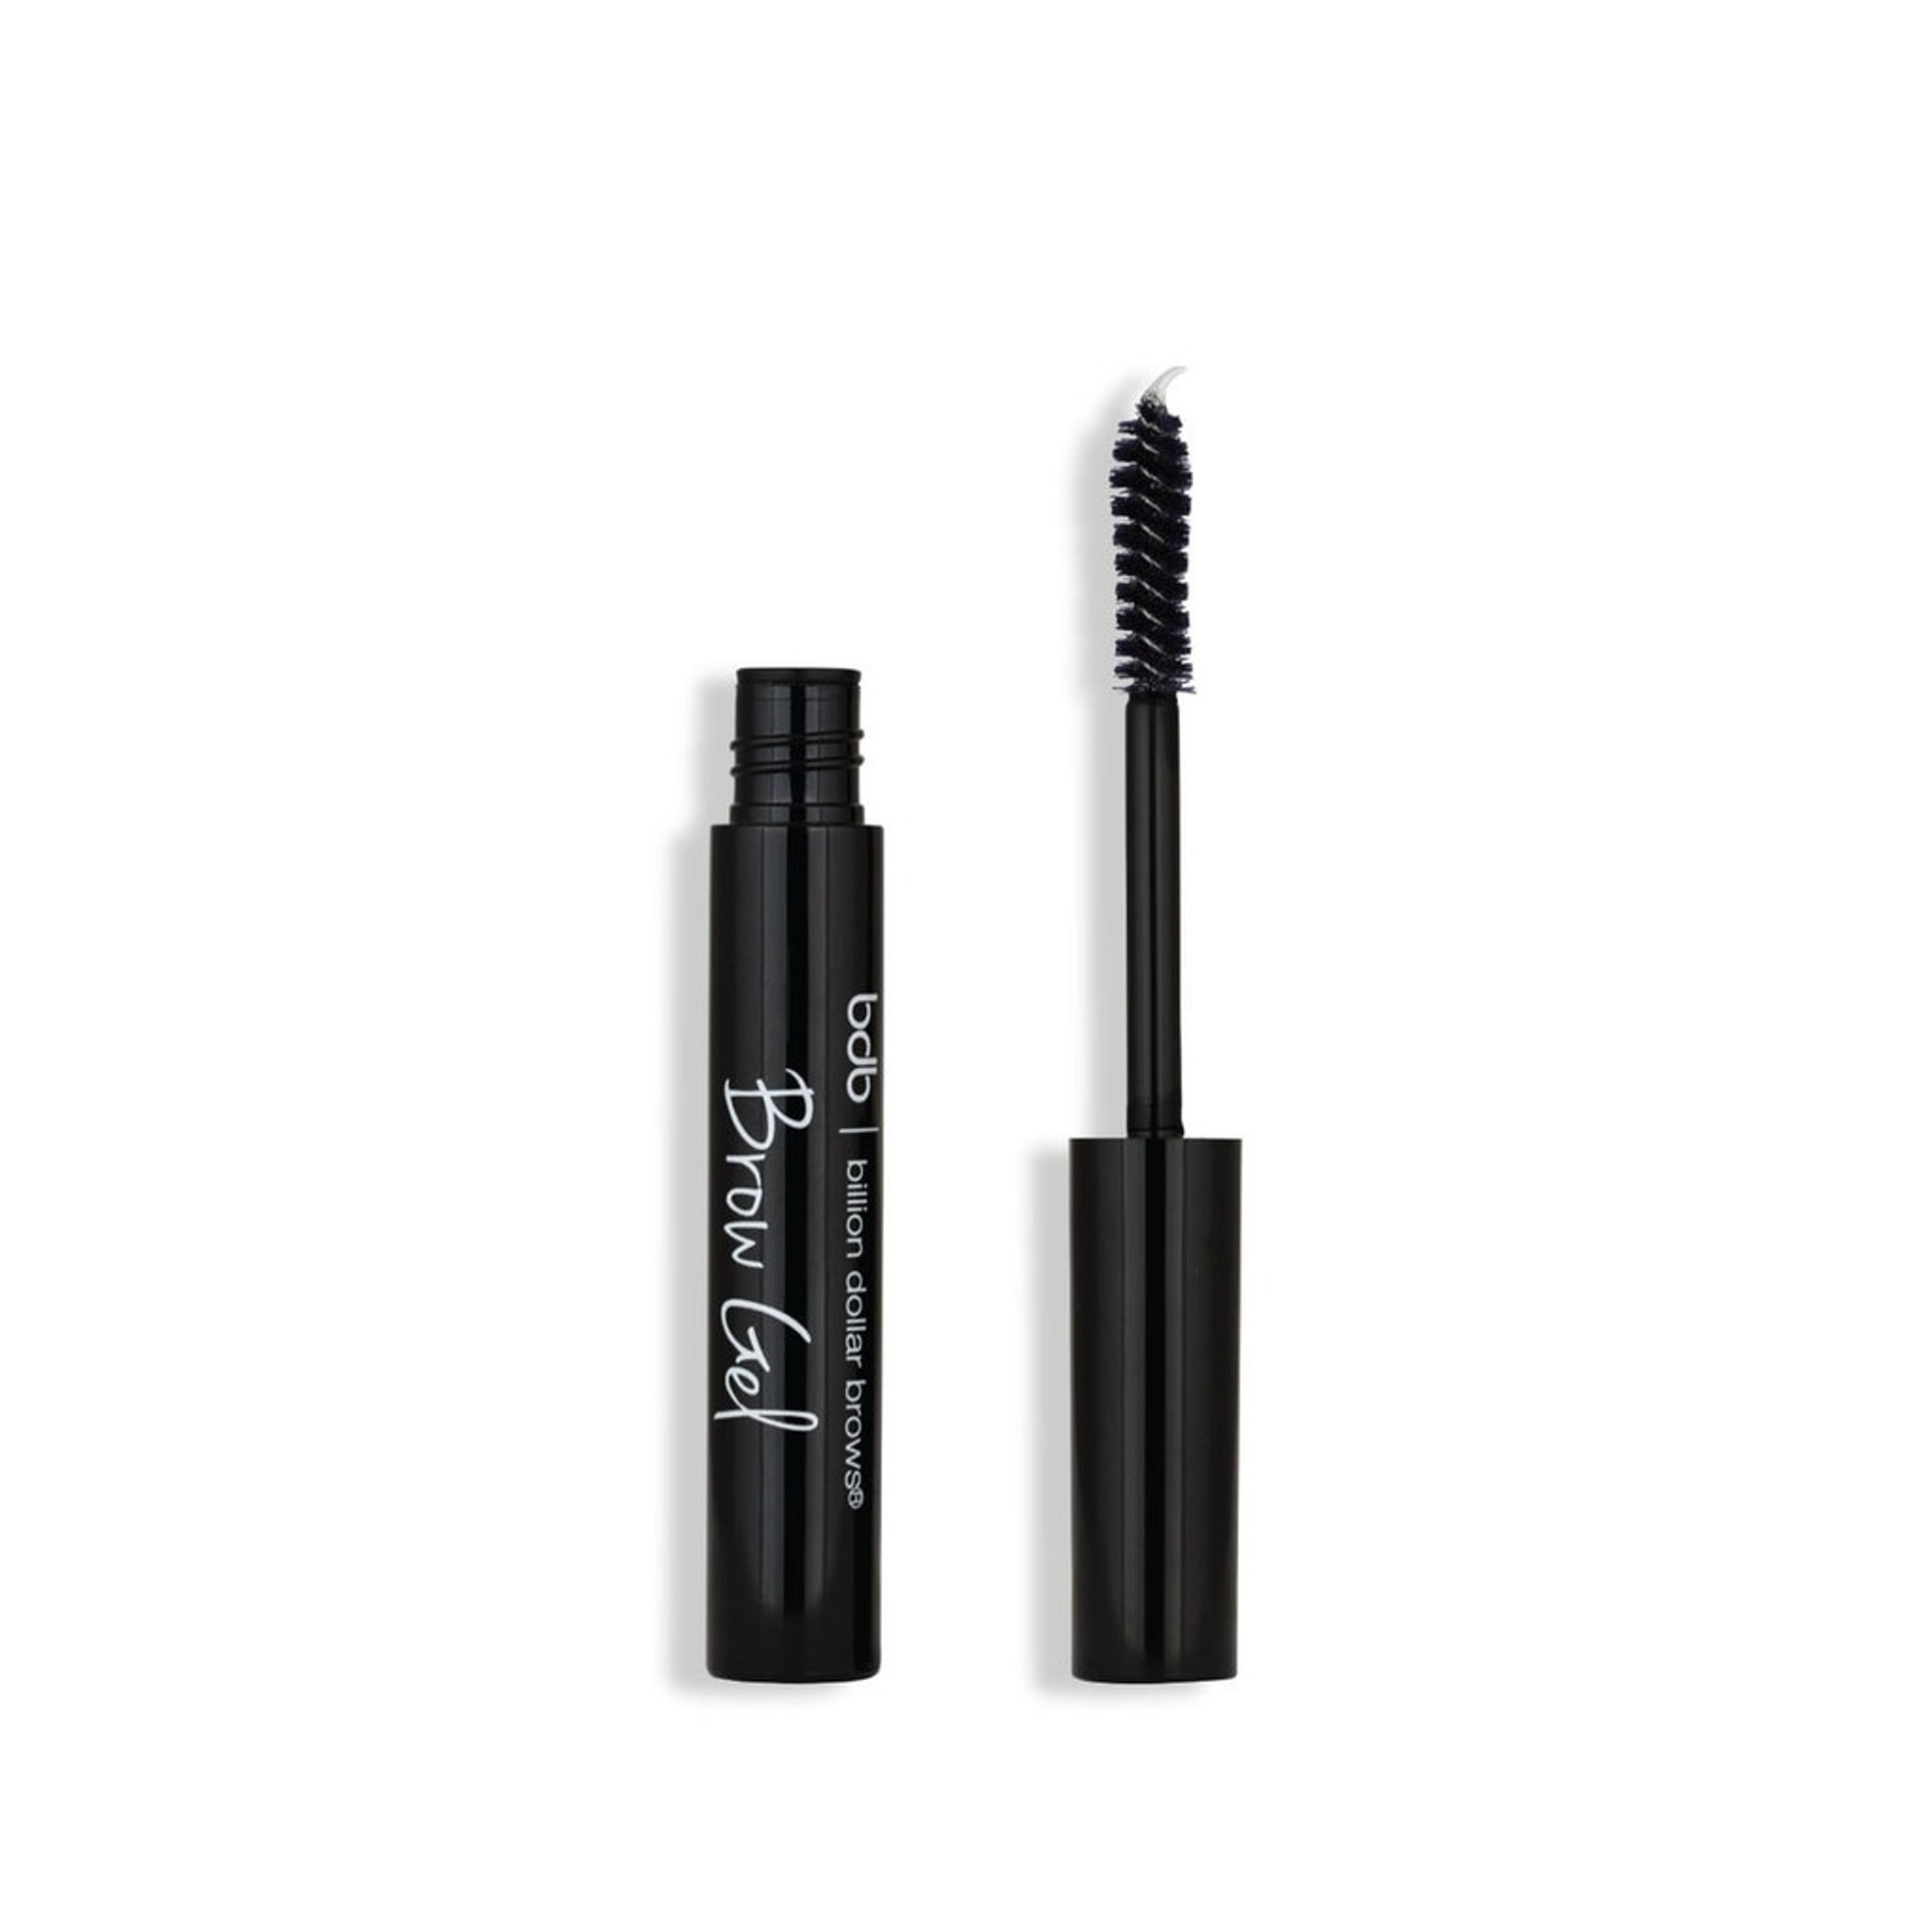 bdb brow gel